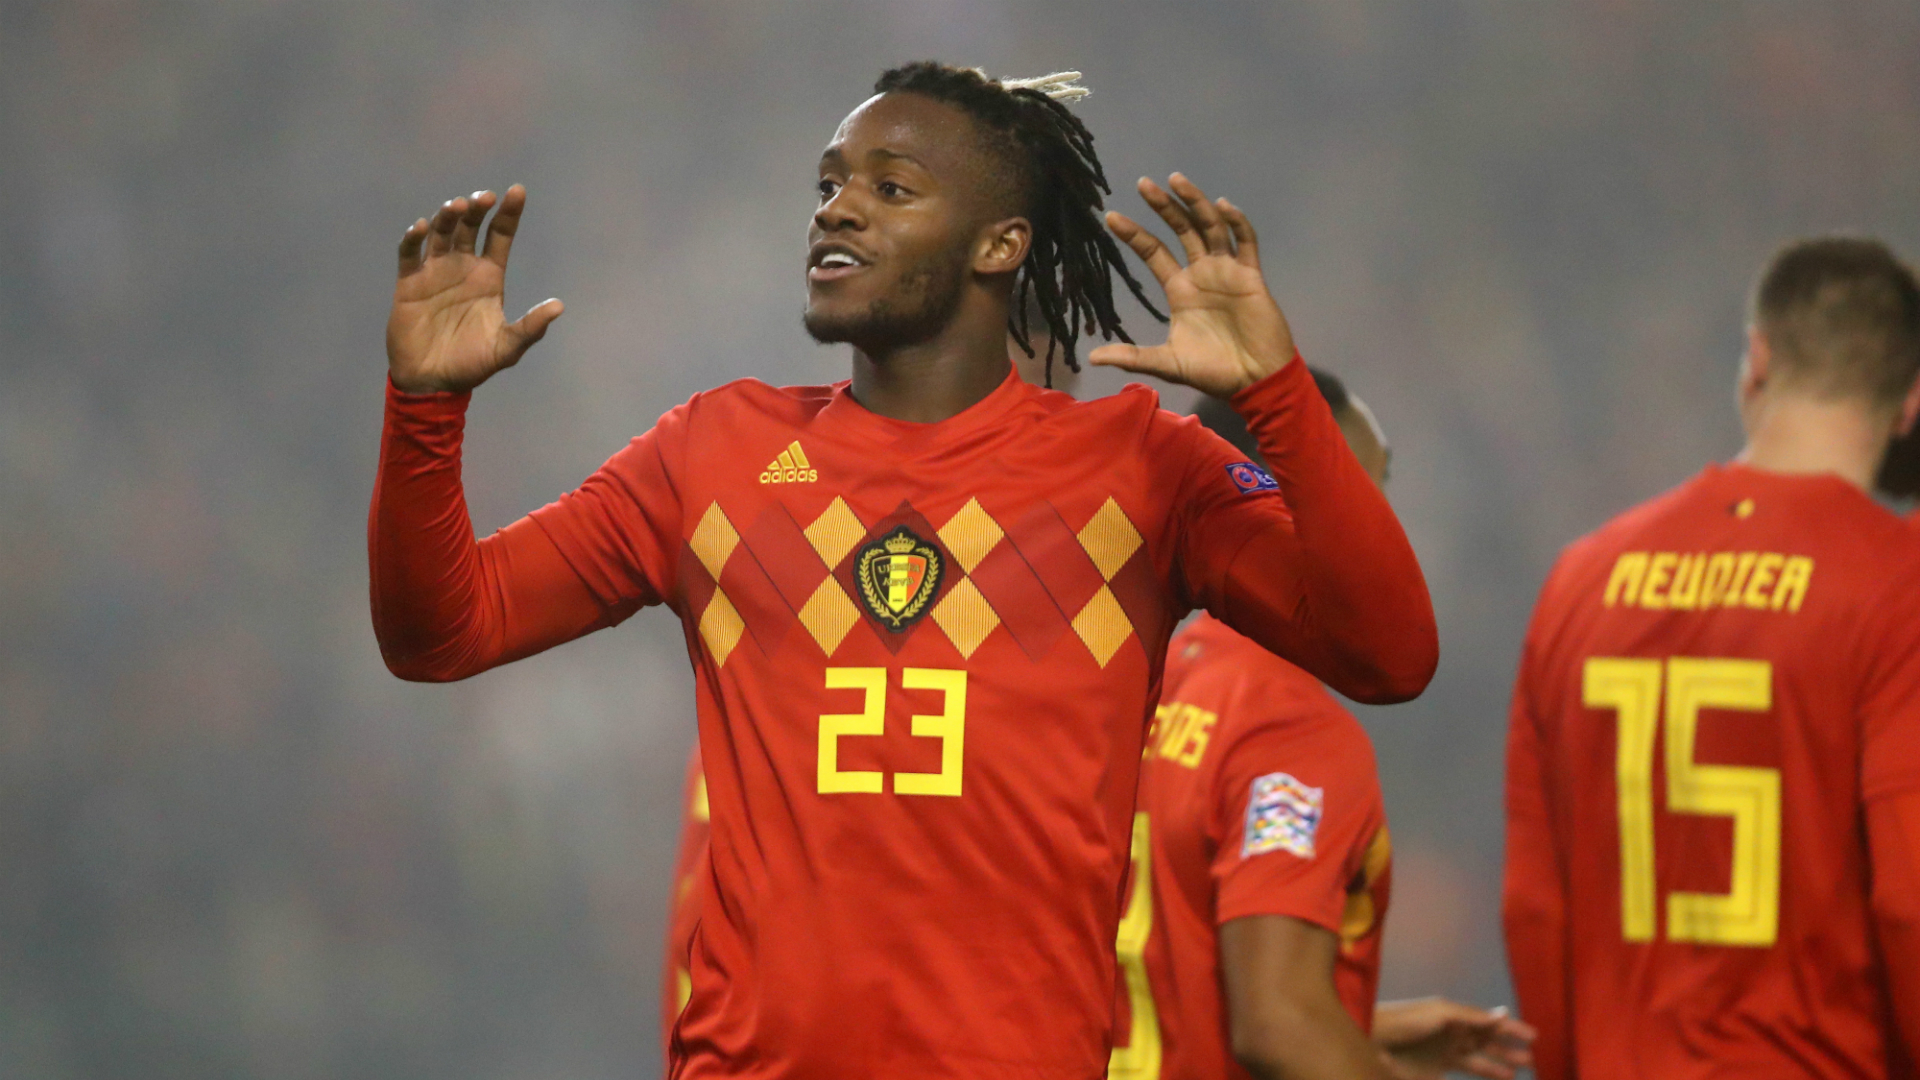 Belgium striker Michy Batshuayi scored twice as the hosts eased to a 5-1 victory over Iceland and a 12th win in a row in their UEFA Nations League clash on Tuesday. In the match at the King Baudouin Stadium, Holmbert Fridjonsson gave Iceland an early lead. But Axel Witsel, Batshuayi, Dries Mertens and teenager Jeremy […]